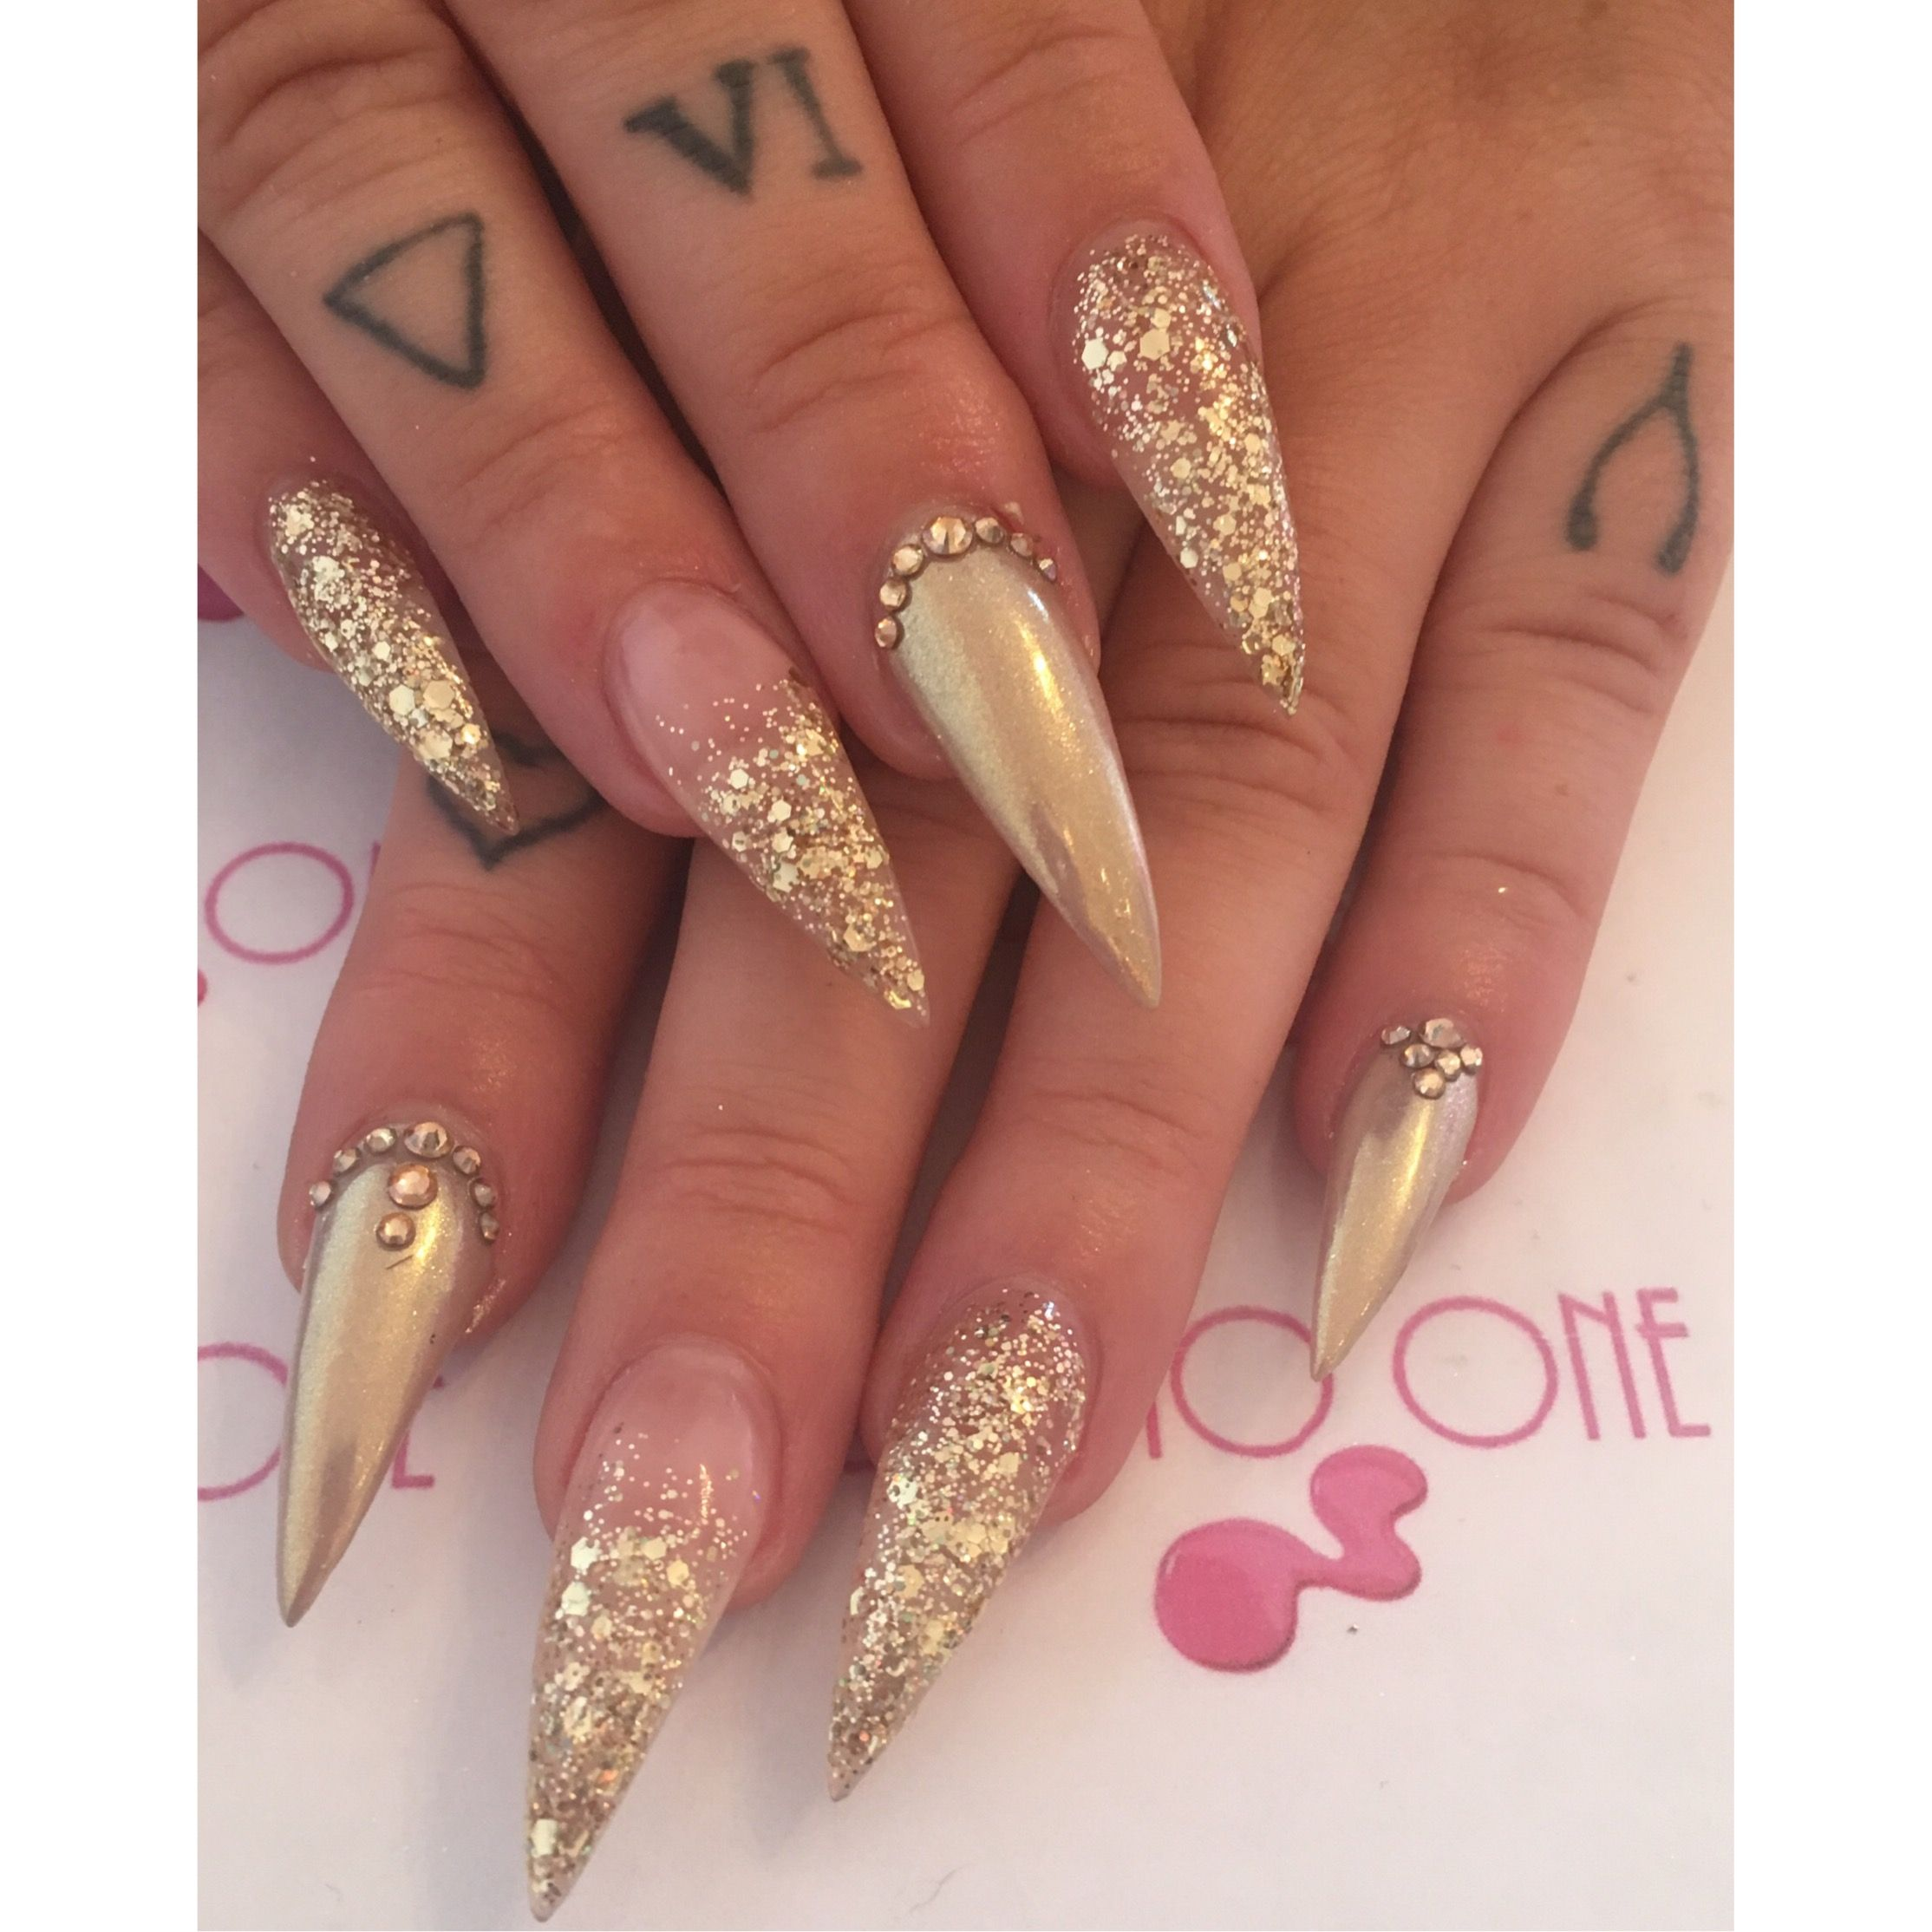 Gold Gems Chrome Chunky Glitter Stiletto Nails Tattoo Glam Sparkle Gelish Acrylic